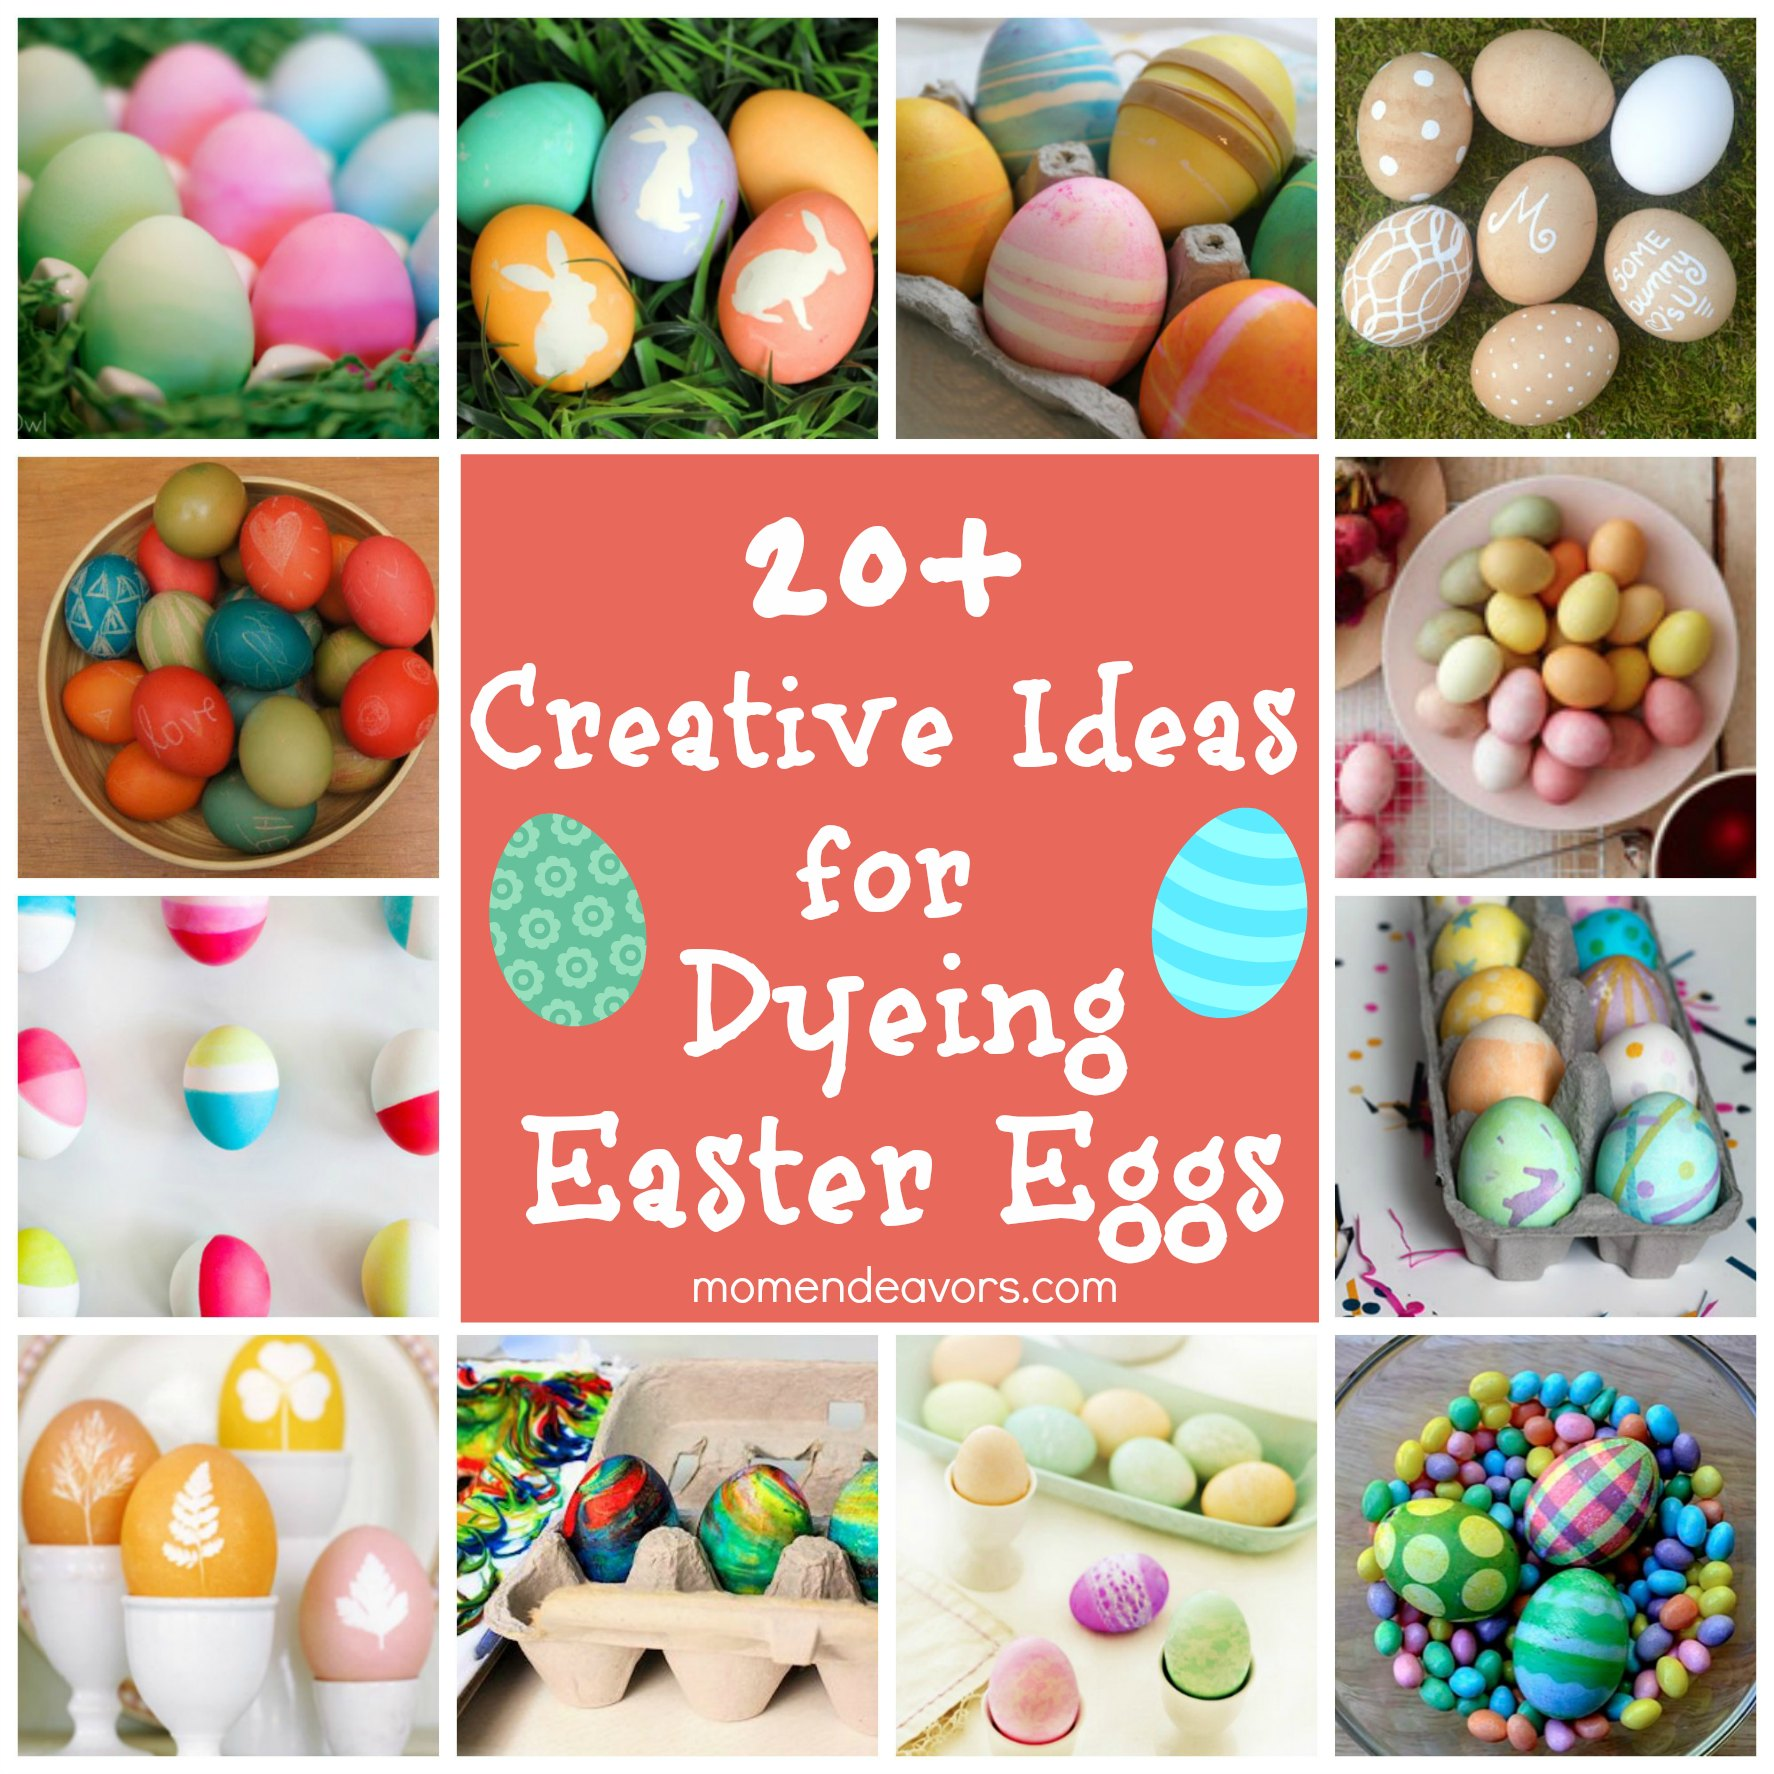 20+ Dyed Easter Egg Ideas